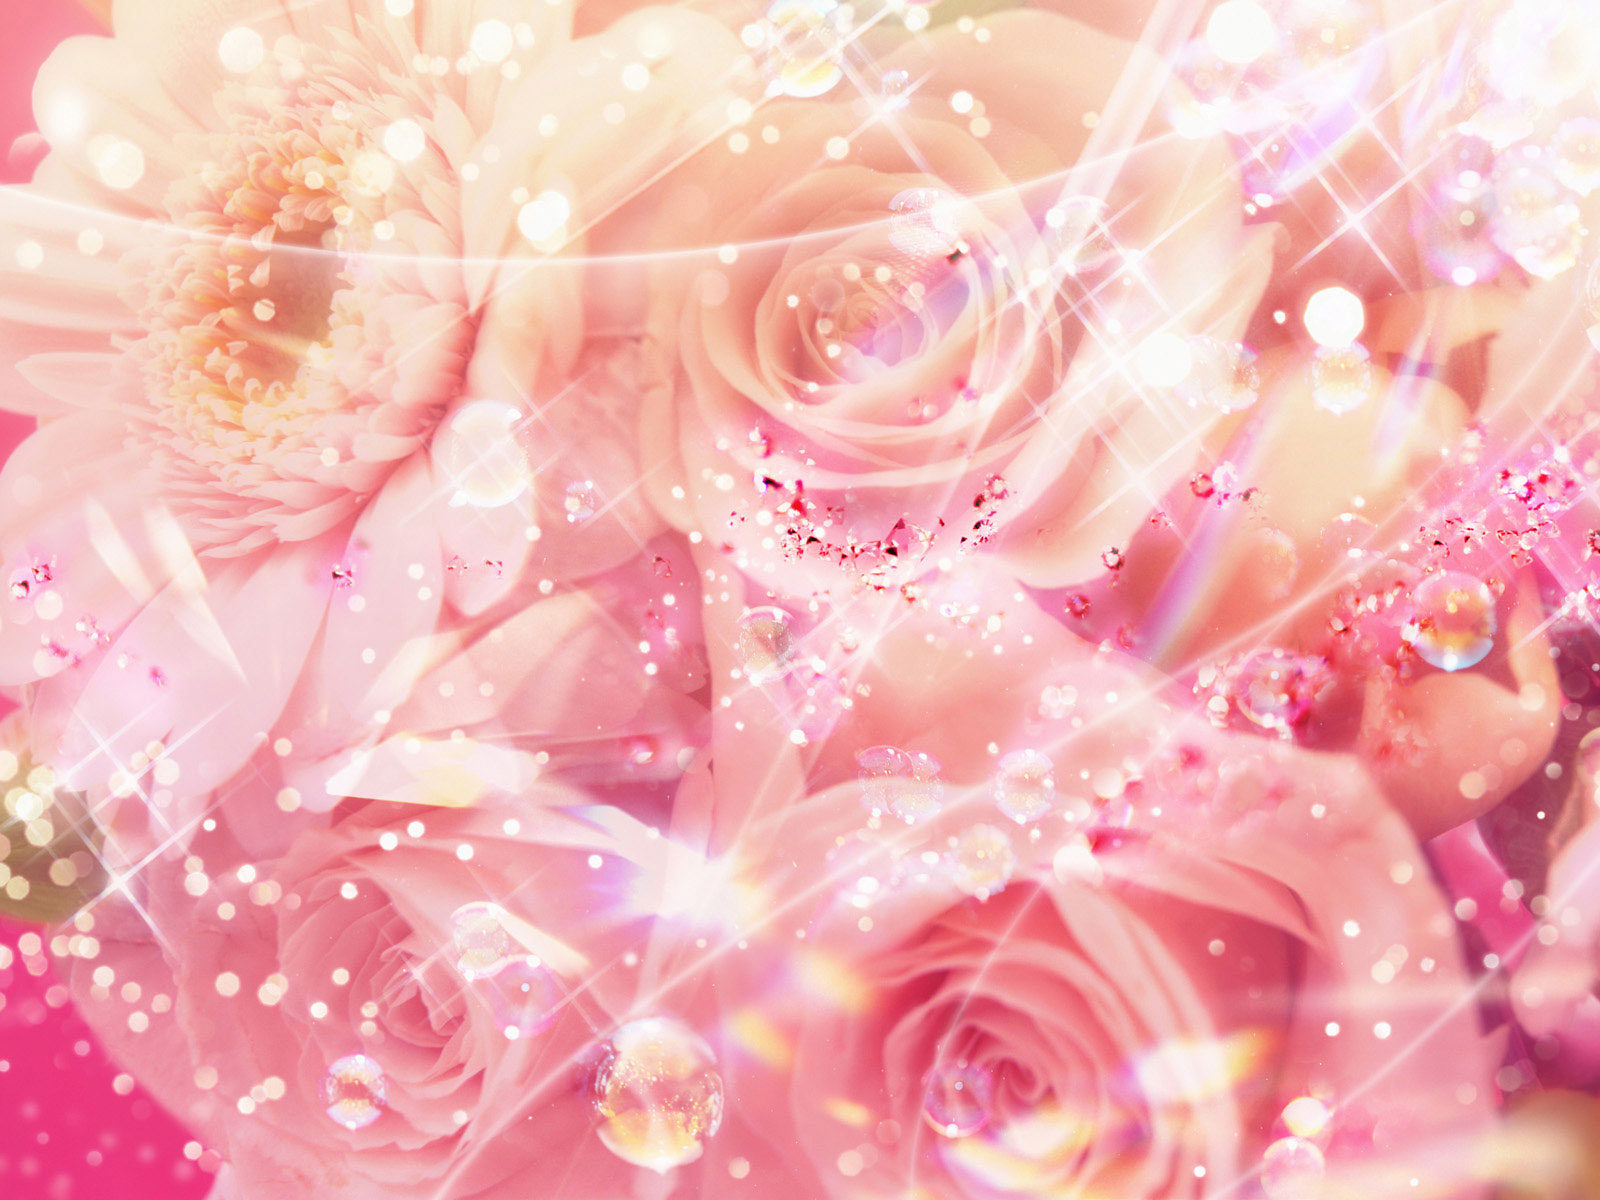 Pretty Pink Roses Wallpaper   Pink Color Photo 34590749 1600x1200